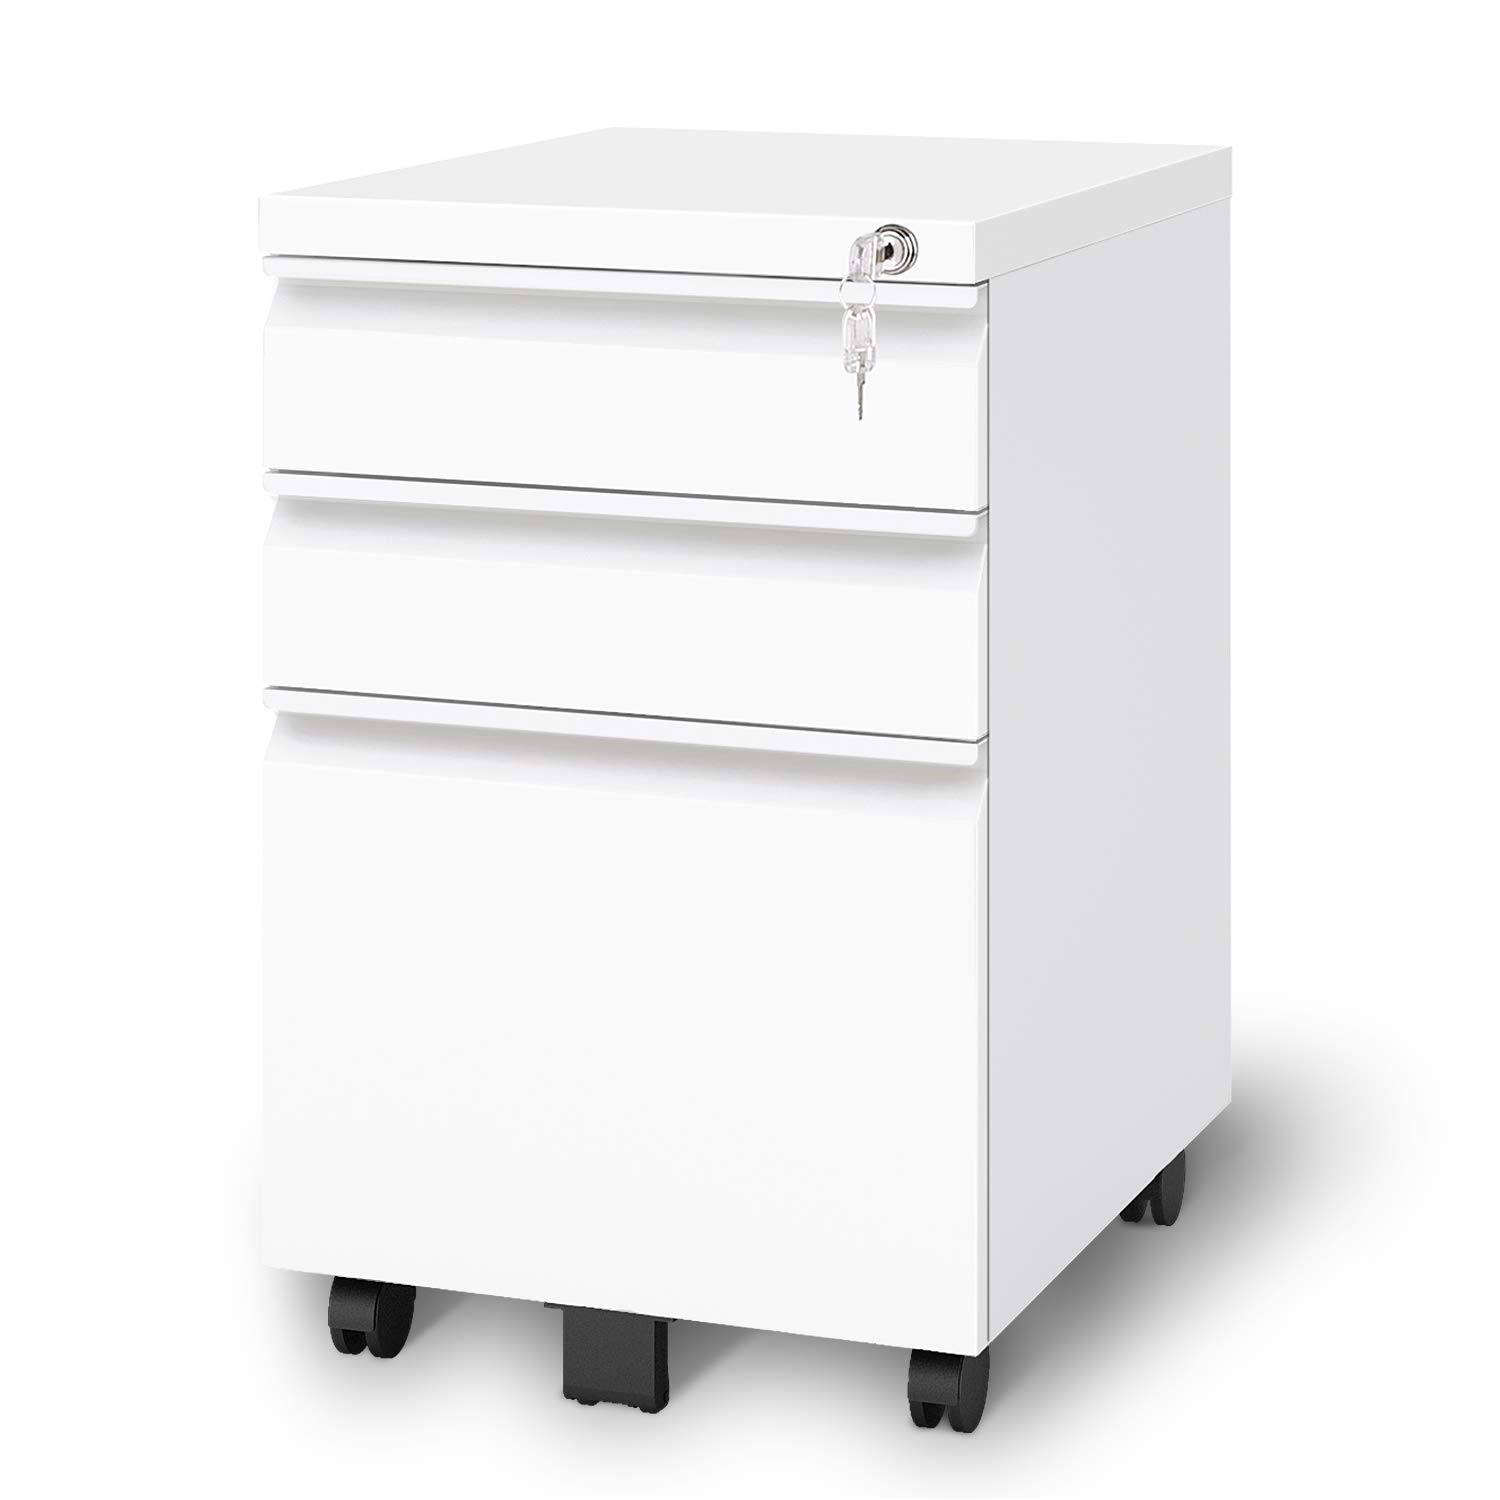 DEVAISE 3 Drawer Metal File Cabinet, Locking Filing Cabinet on Wheels, White by DEVAISE